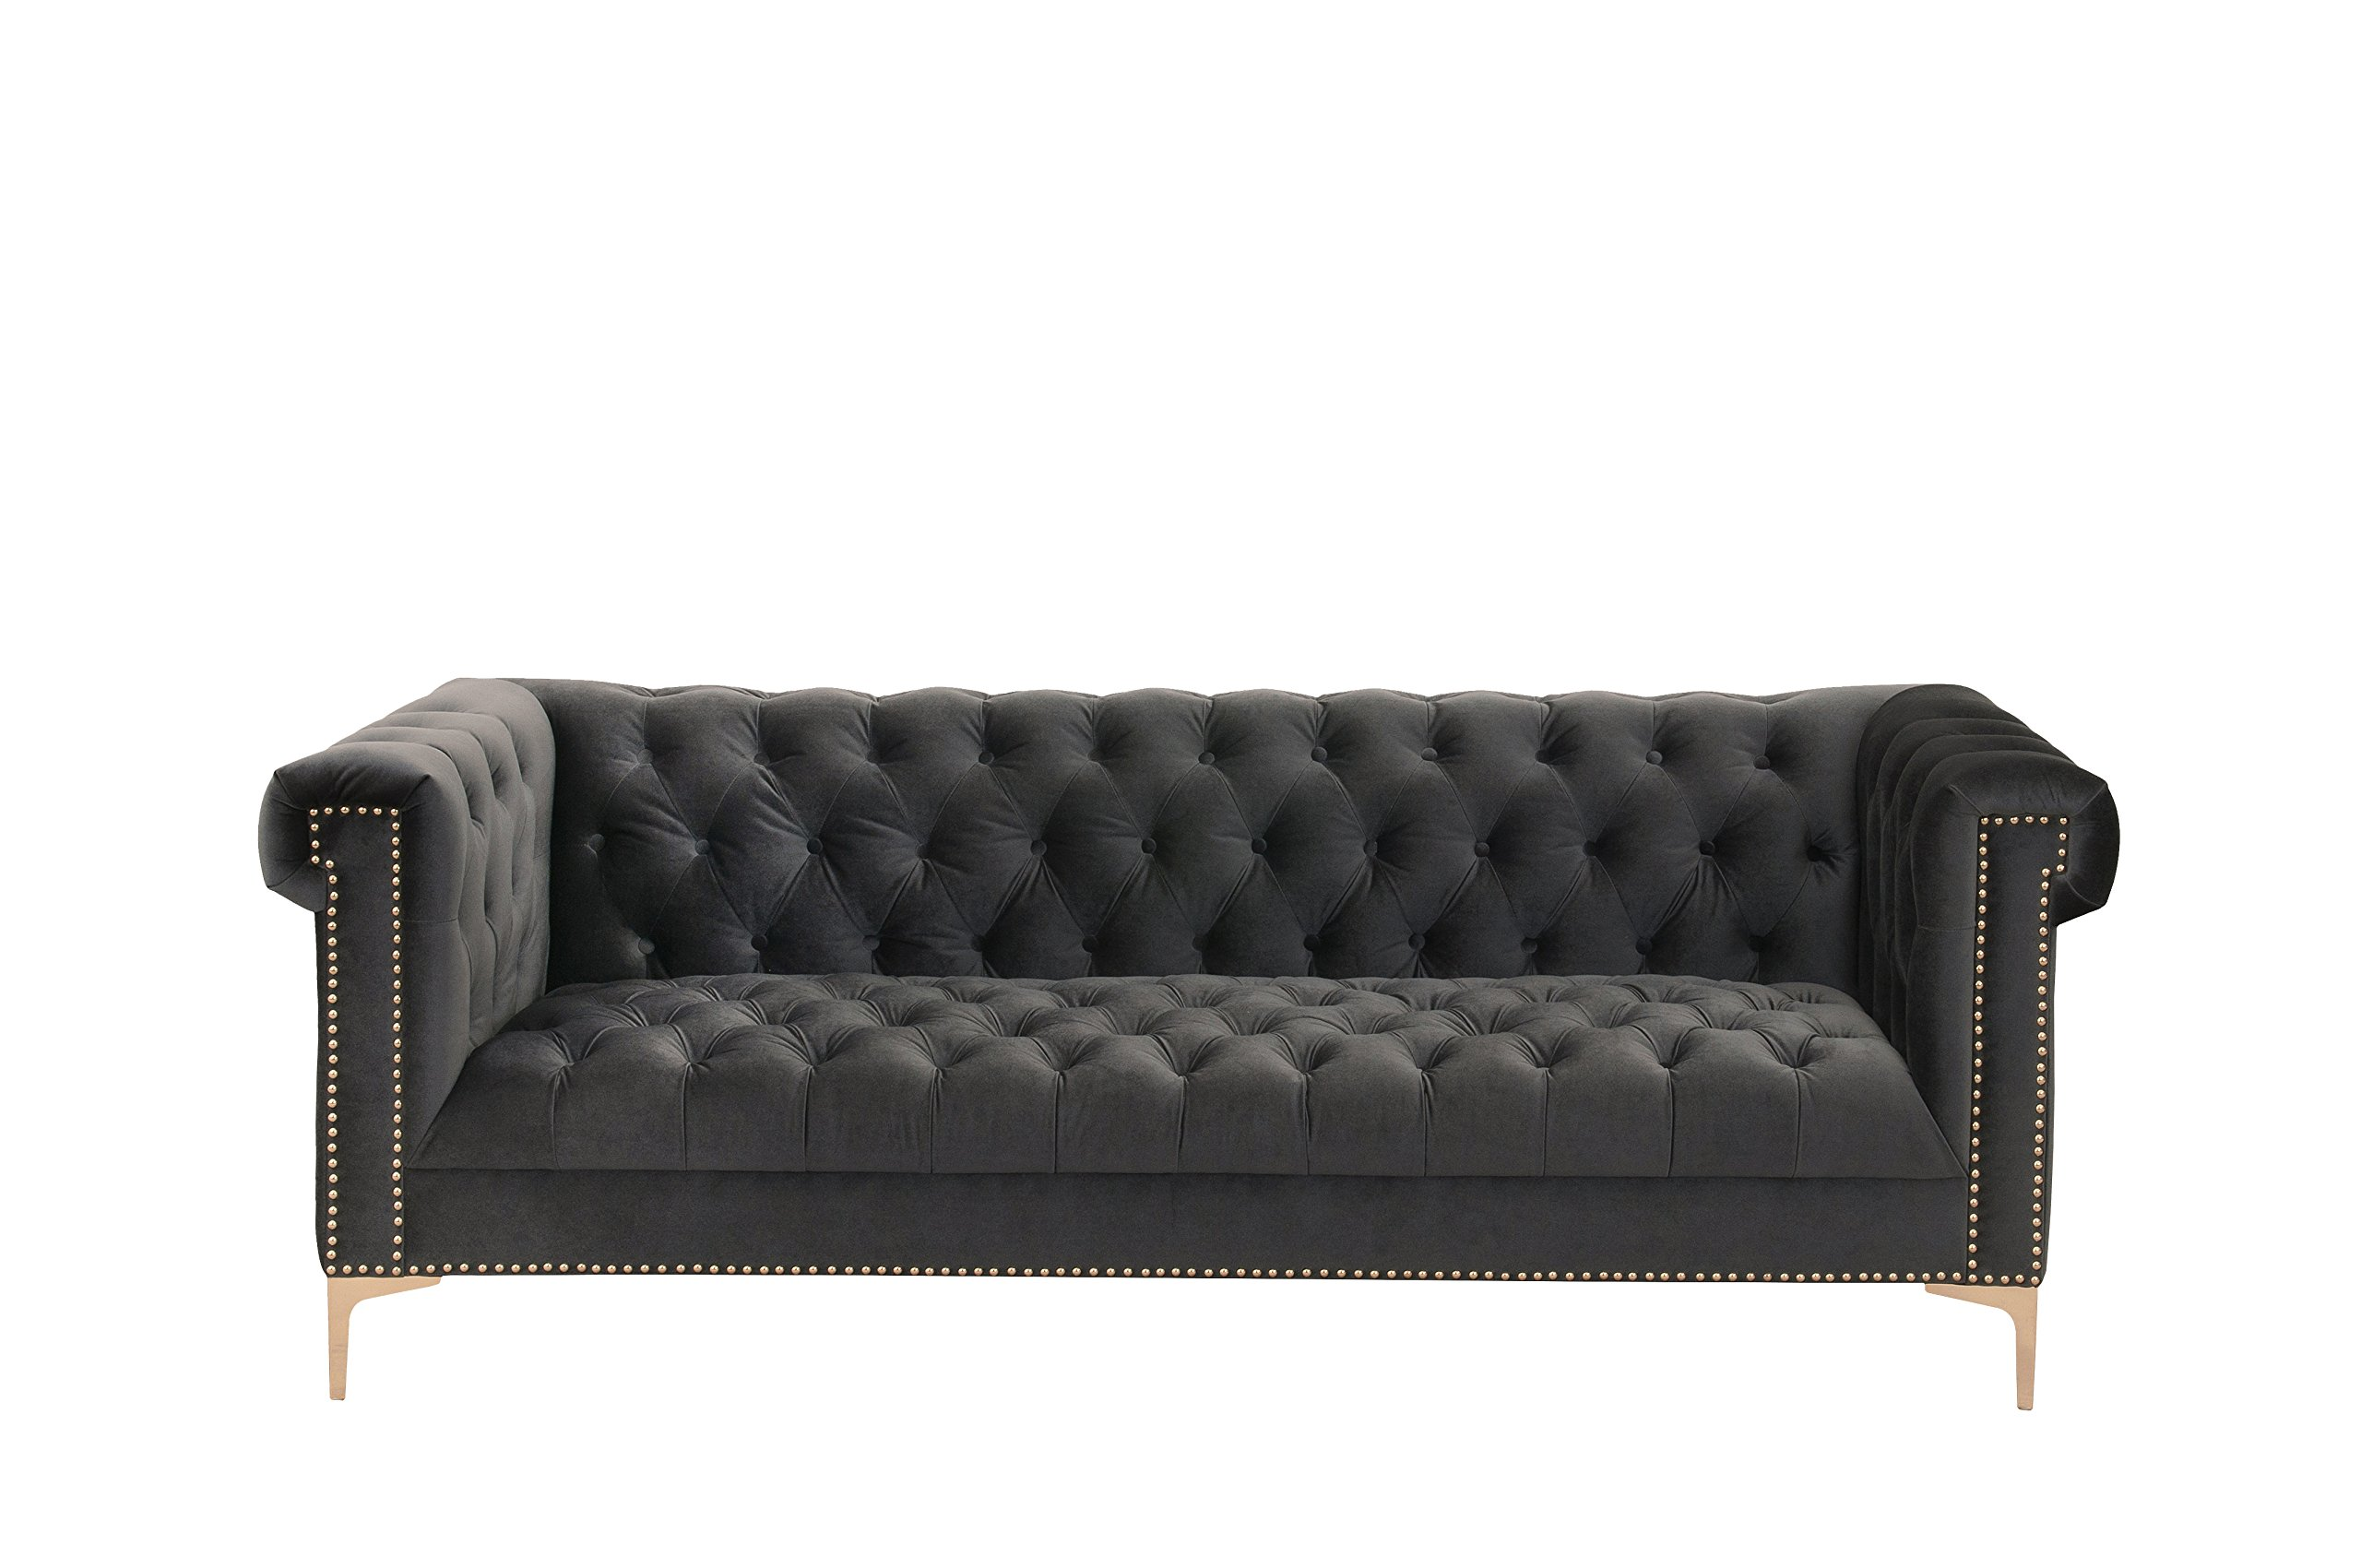 Iconic Home Gold/Grey Bea Velvet with Nail head Trim Tone Metal Sofa - Classic Velvet sofa with gold tone Y-shaped legs seats three Grey velvet sofa with rolled arms and gold tone nail head trim Regal chesterfield style button tufting throughout - sofas-couches, living-room-furniture, living-room - 81eqLdOlWhL -